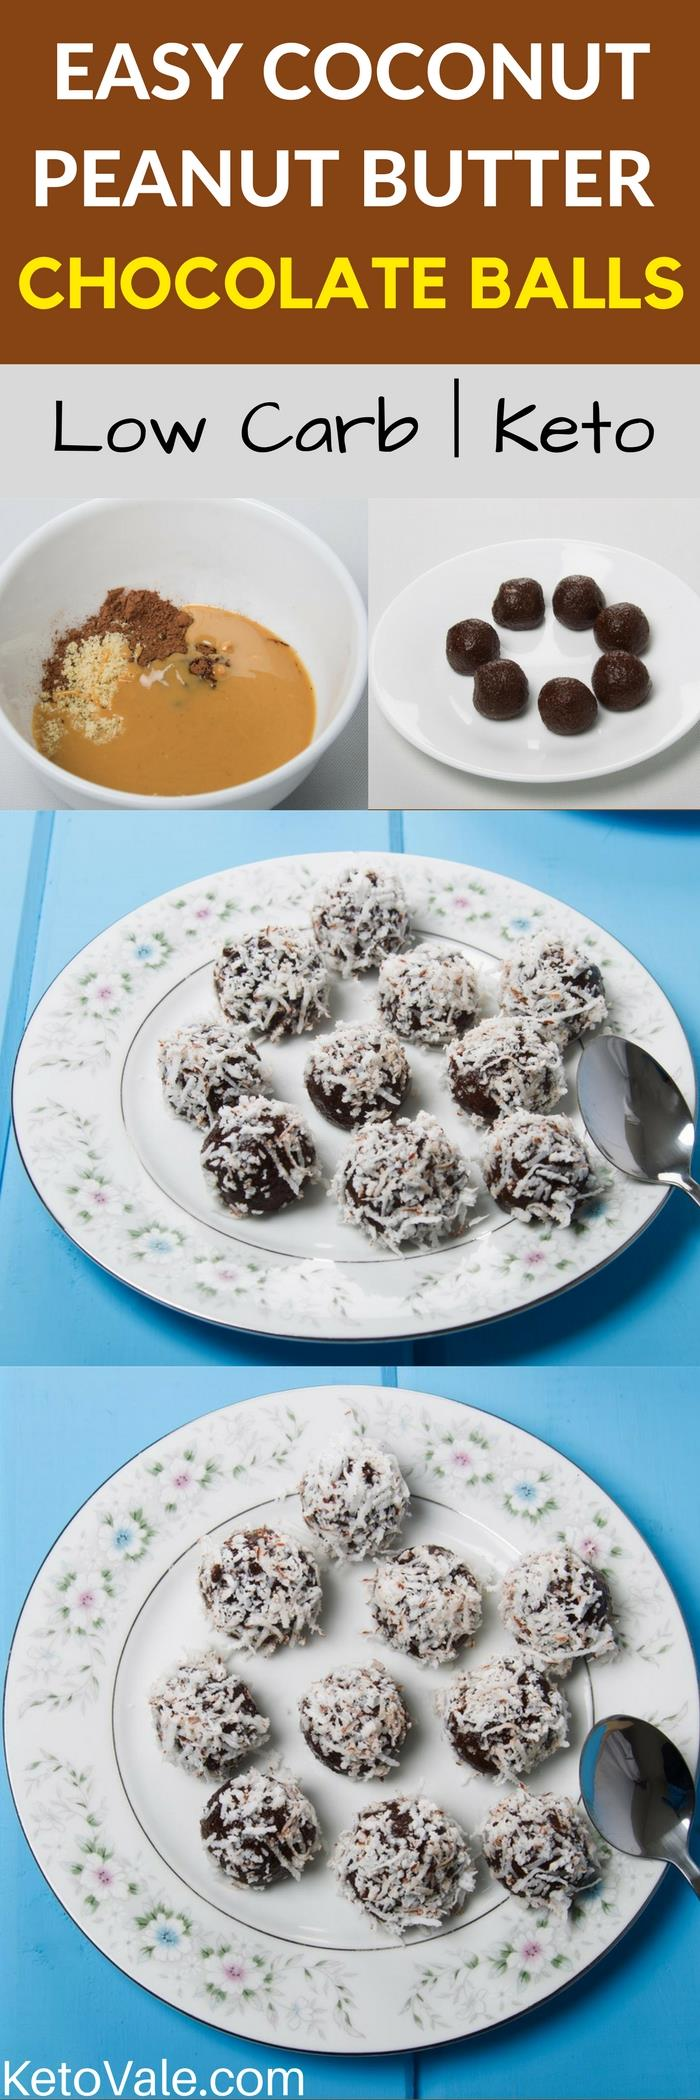 Coconut Peanut Butter Chocolate Balls Recipe